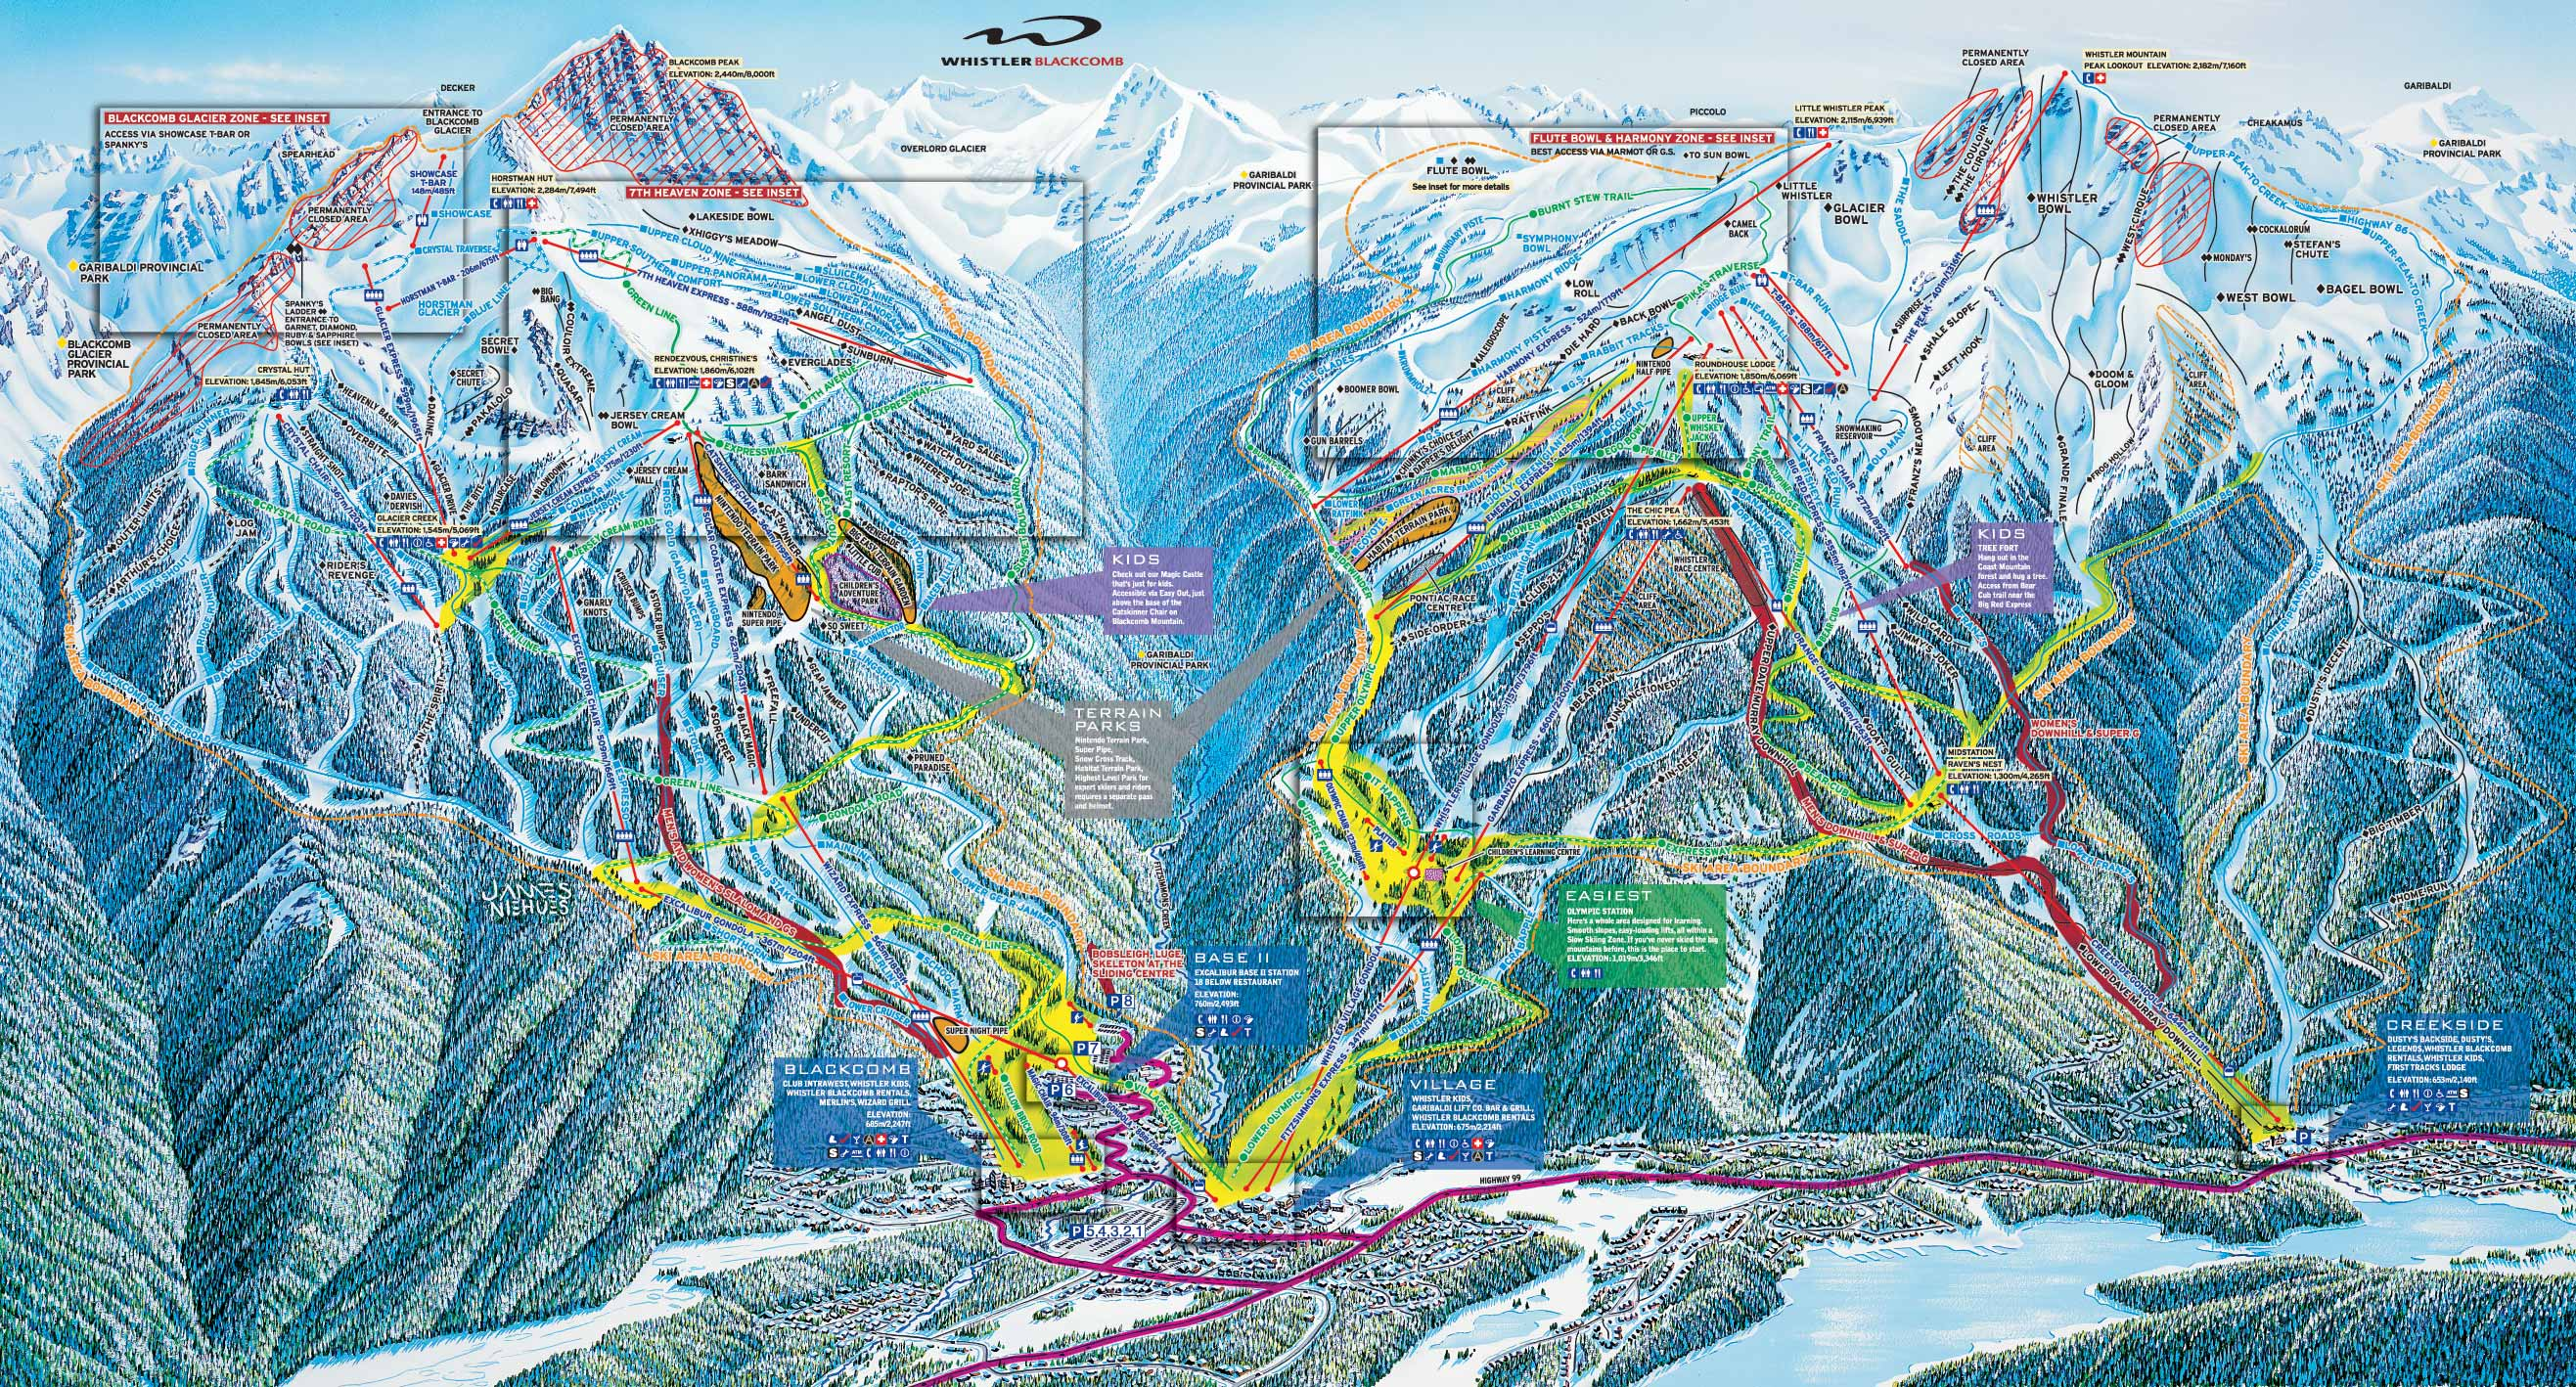 whistler blackcomb trail map - whistler bc • mappery